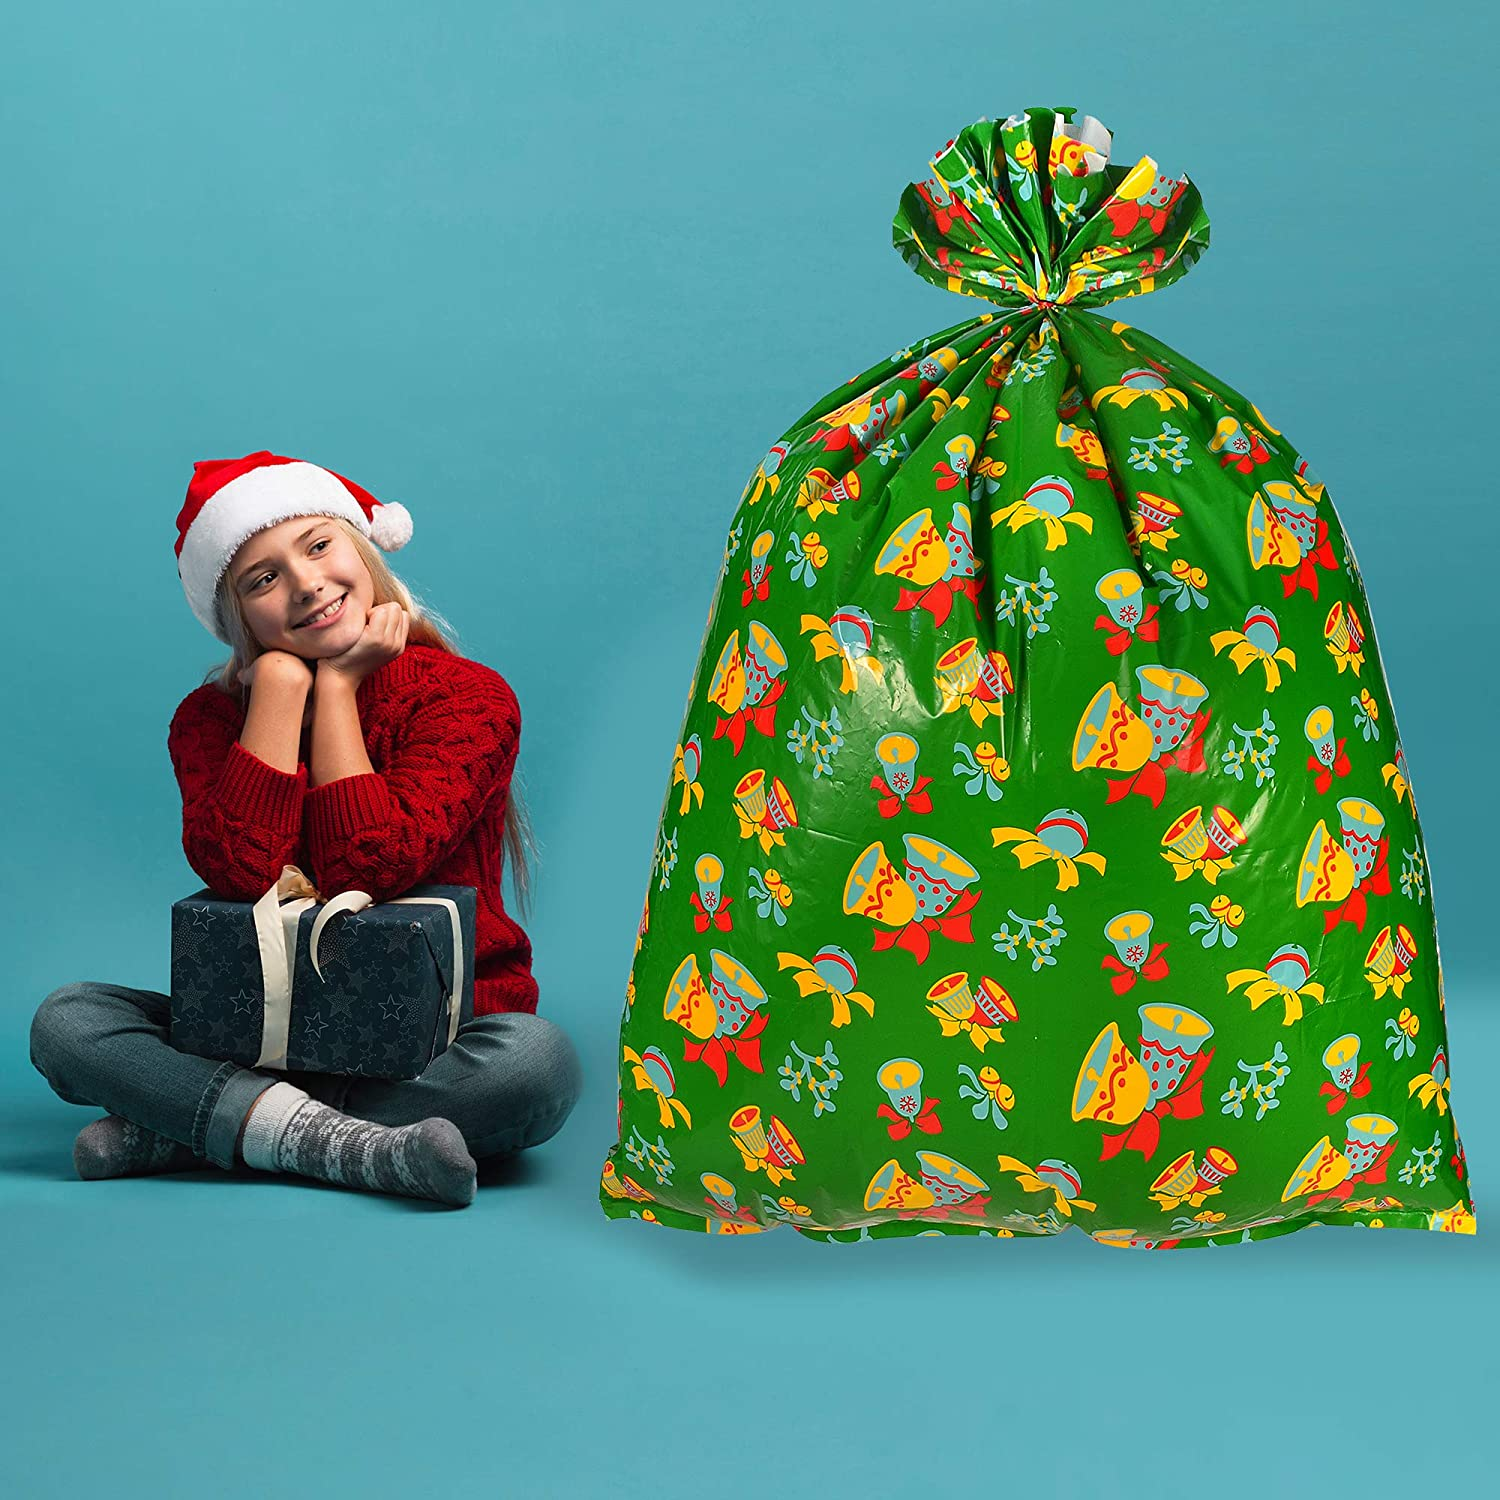 """Heavy Duty Party Favor Supplies Jumbo Size 43/"""" X 36/"""" Oversize Xmas Gifts W//Tie /& Name Card Assortment for Holiday Treats Christmas Goodie Large Bags 6 Pieces Christmas Giant Goody Gift Bags"""